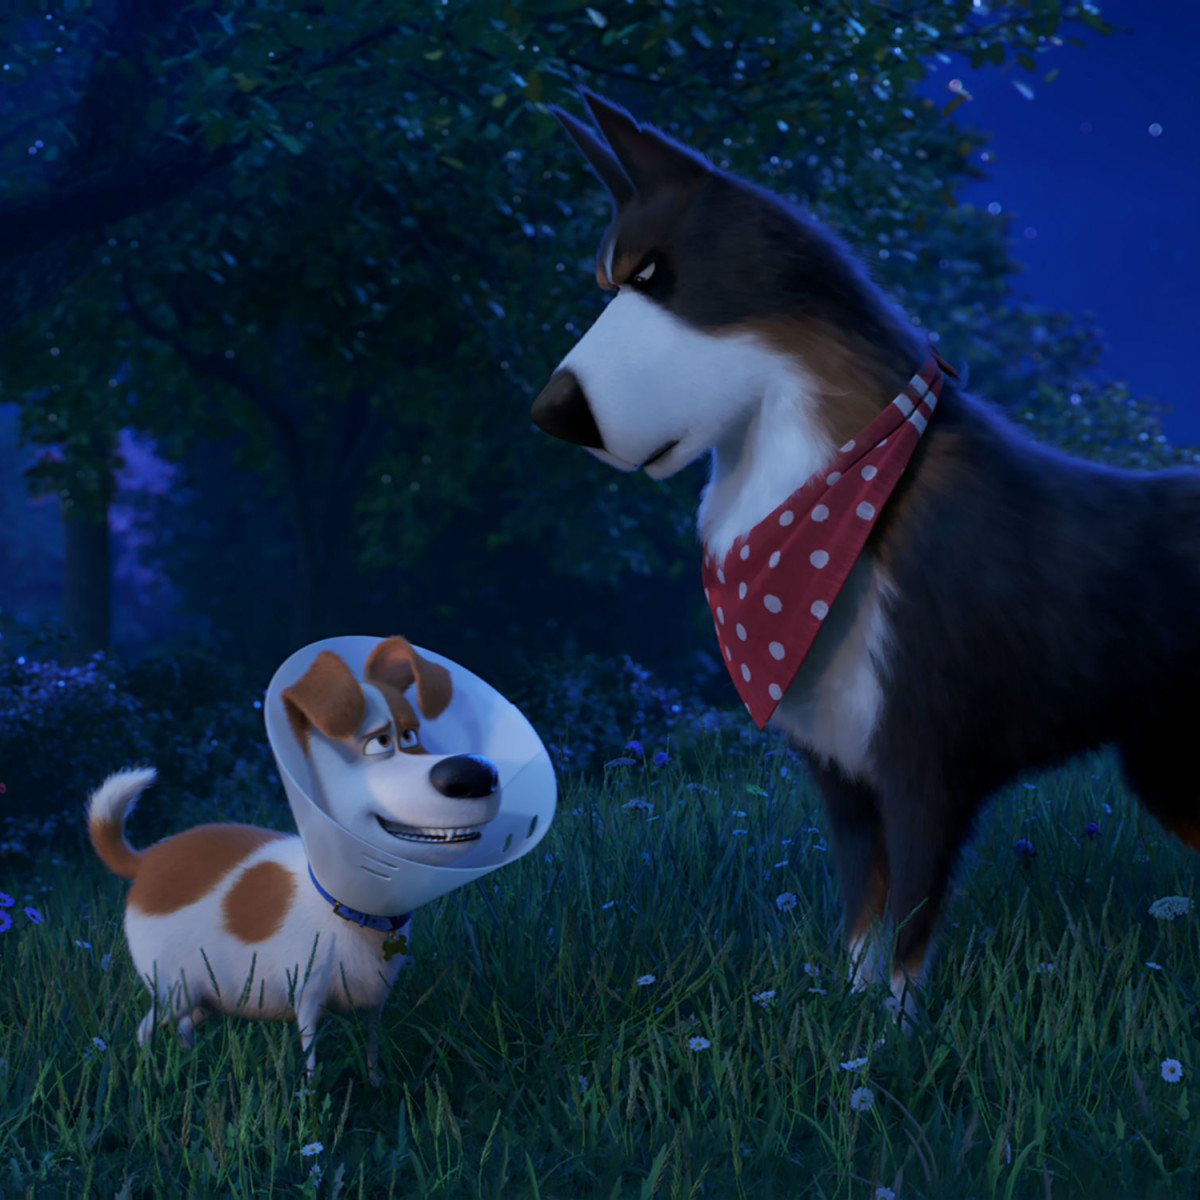 Max (Patton Oswalt) and Rooster (Harrison Ford) in The Secret Life of Pets 2